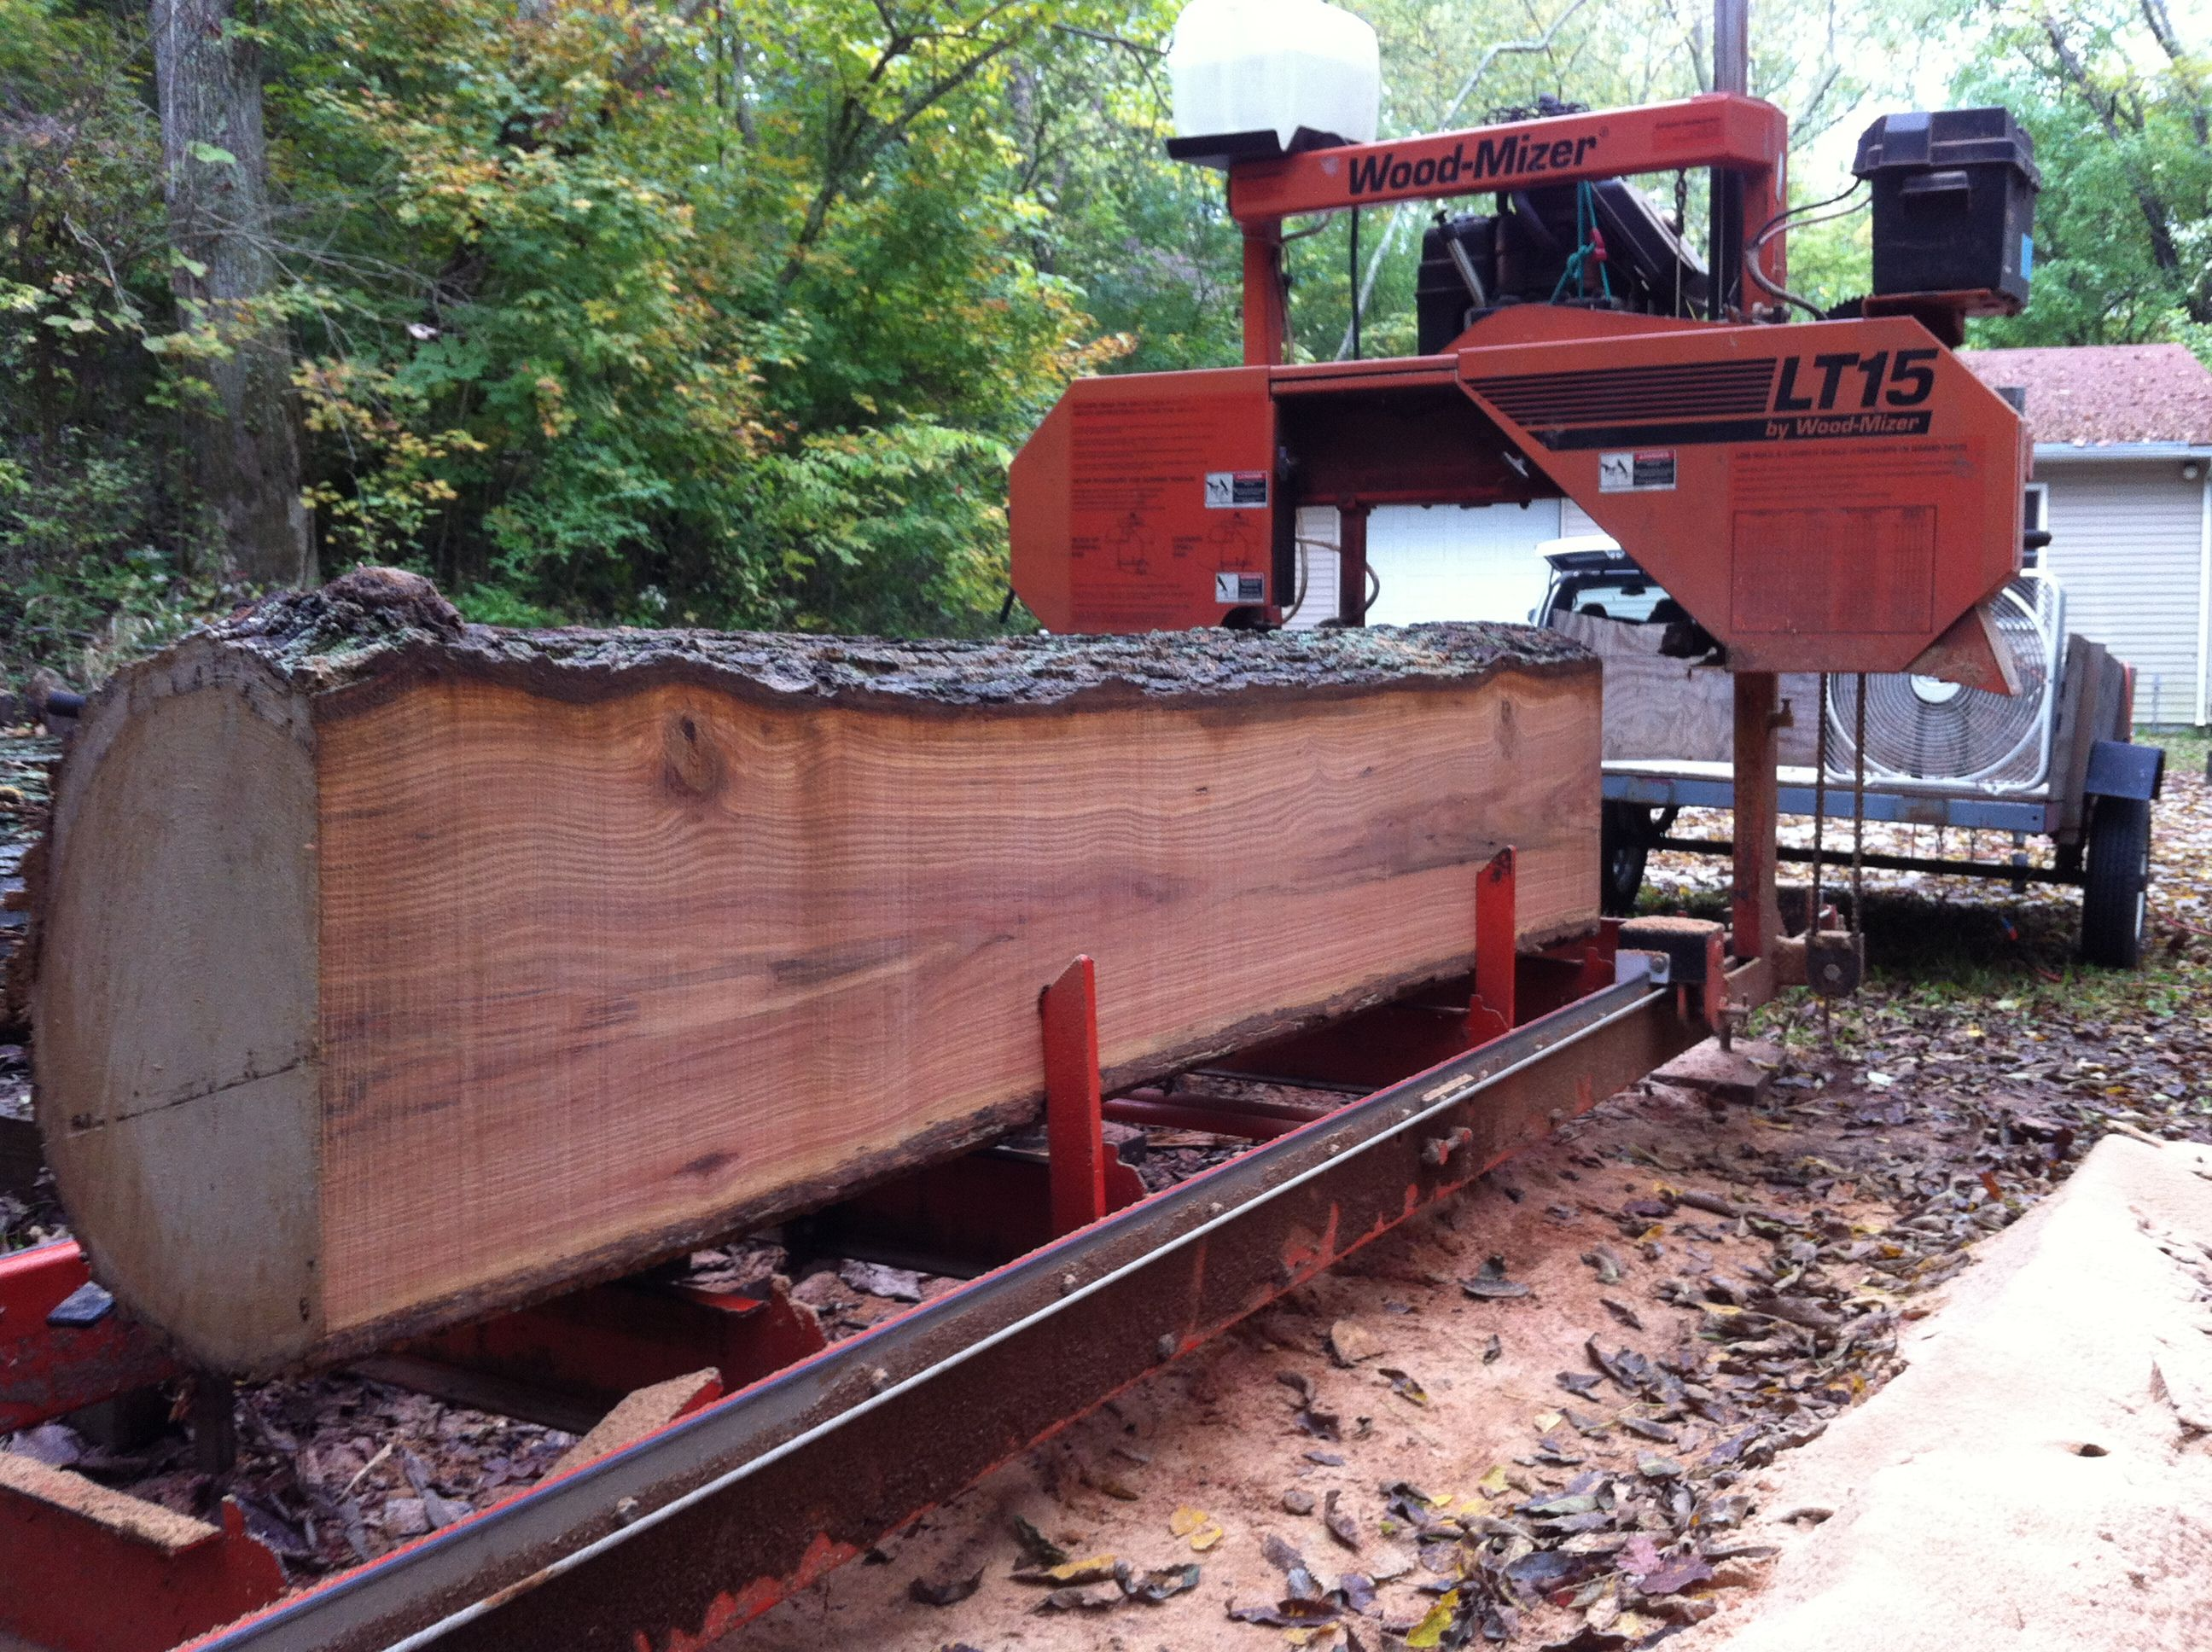 Our woodmizer lt15 sawmill with a 22